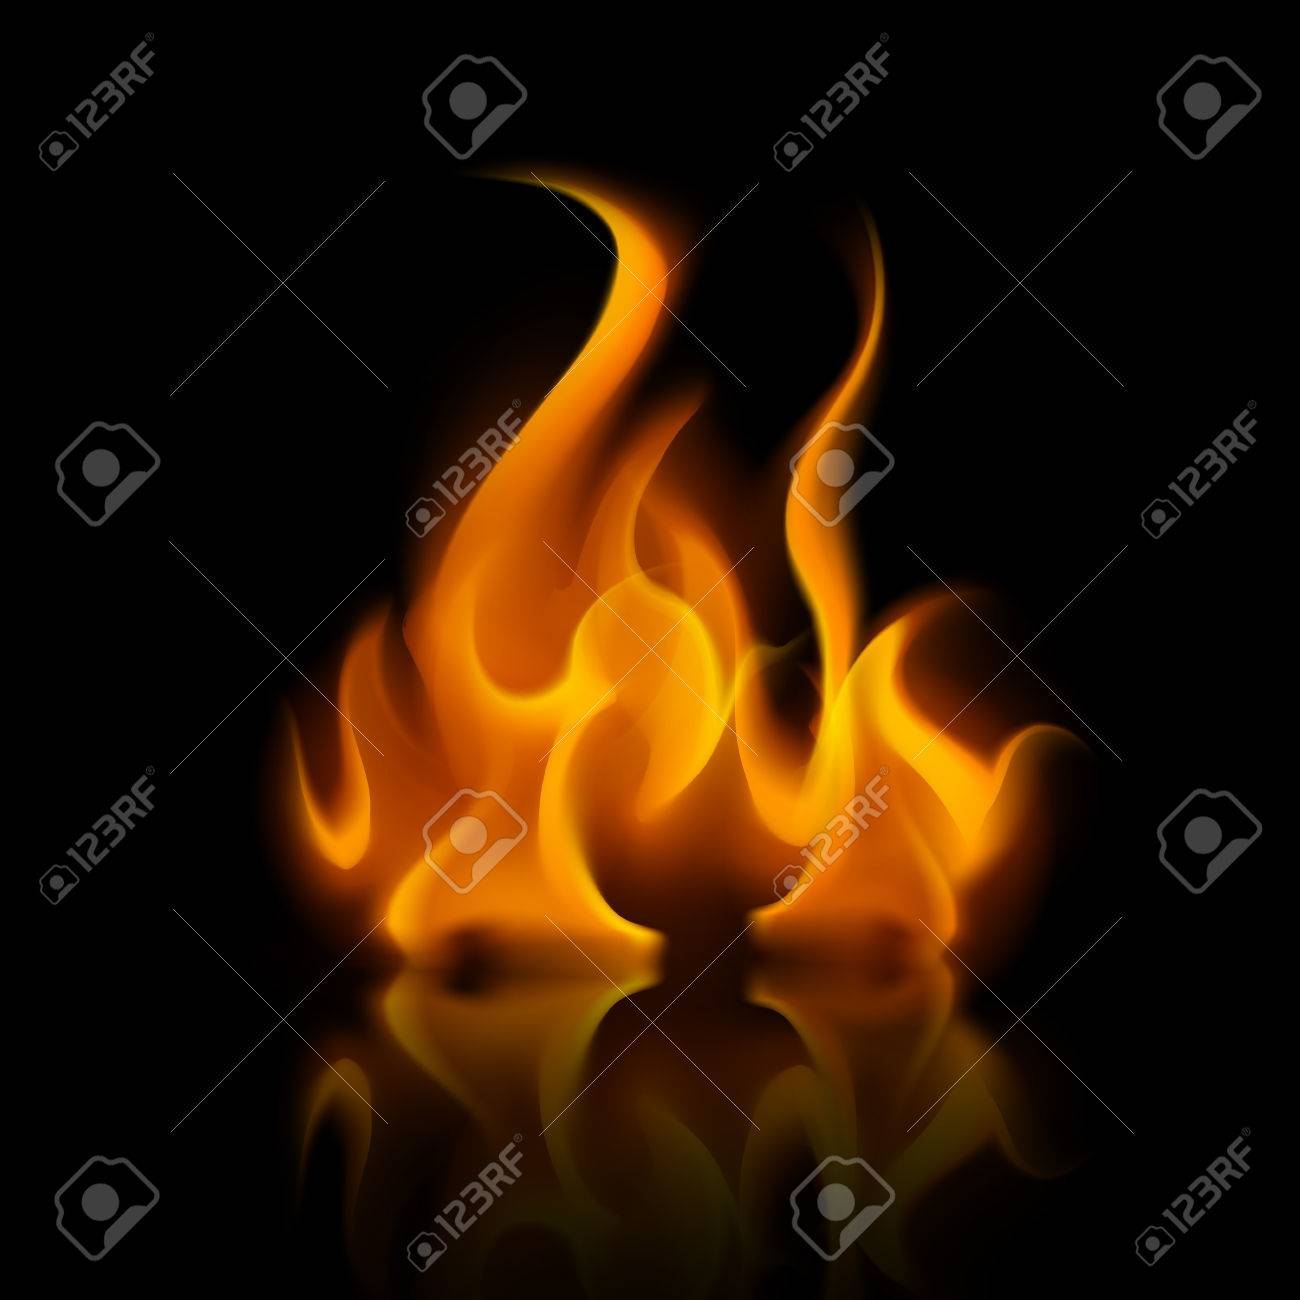 Vector Yellow Orange Fire Flame Bonfire Isolated on Background - 64185217